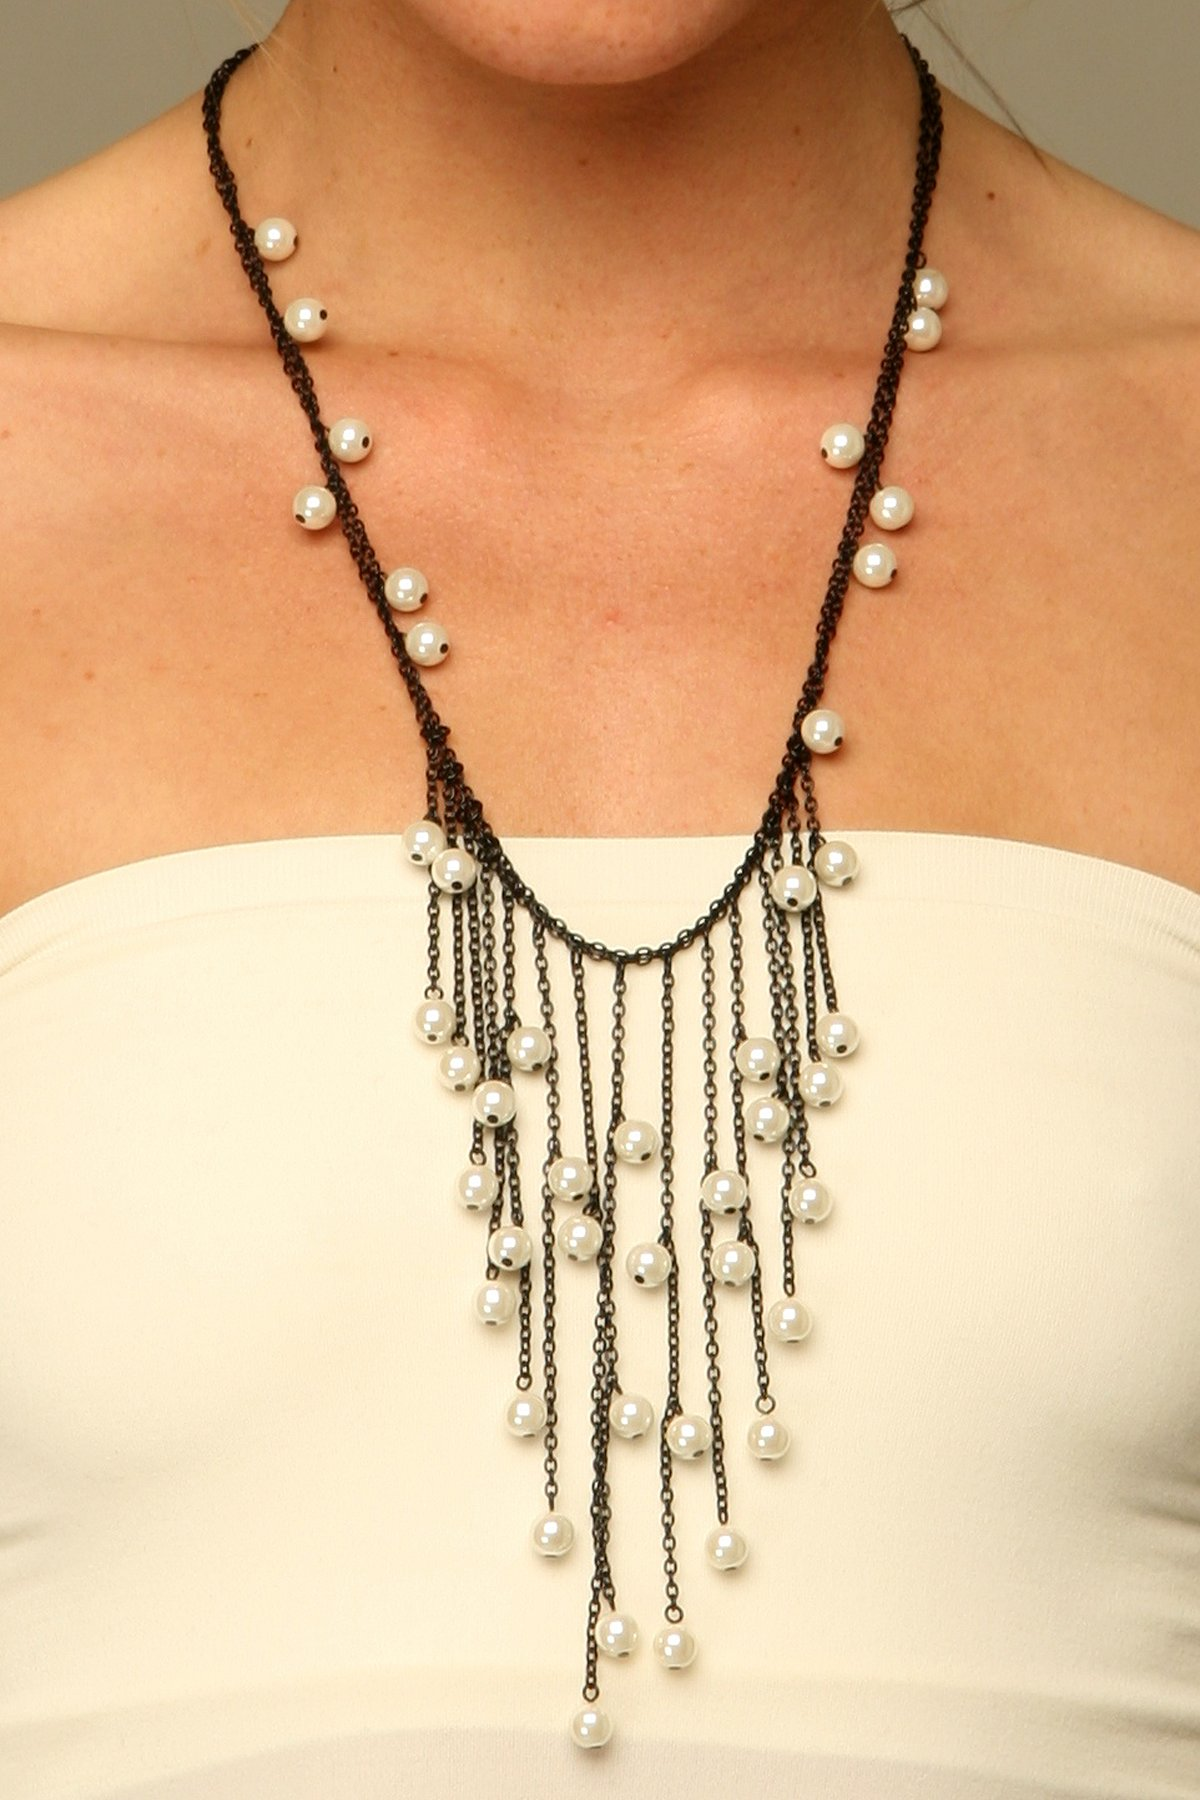 Dripping Pearls Necklace